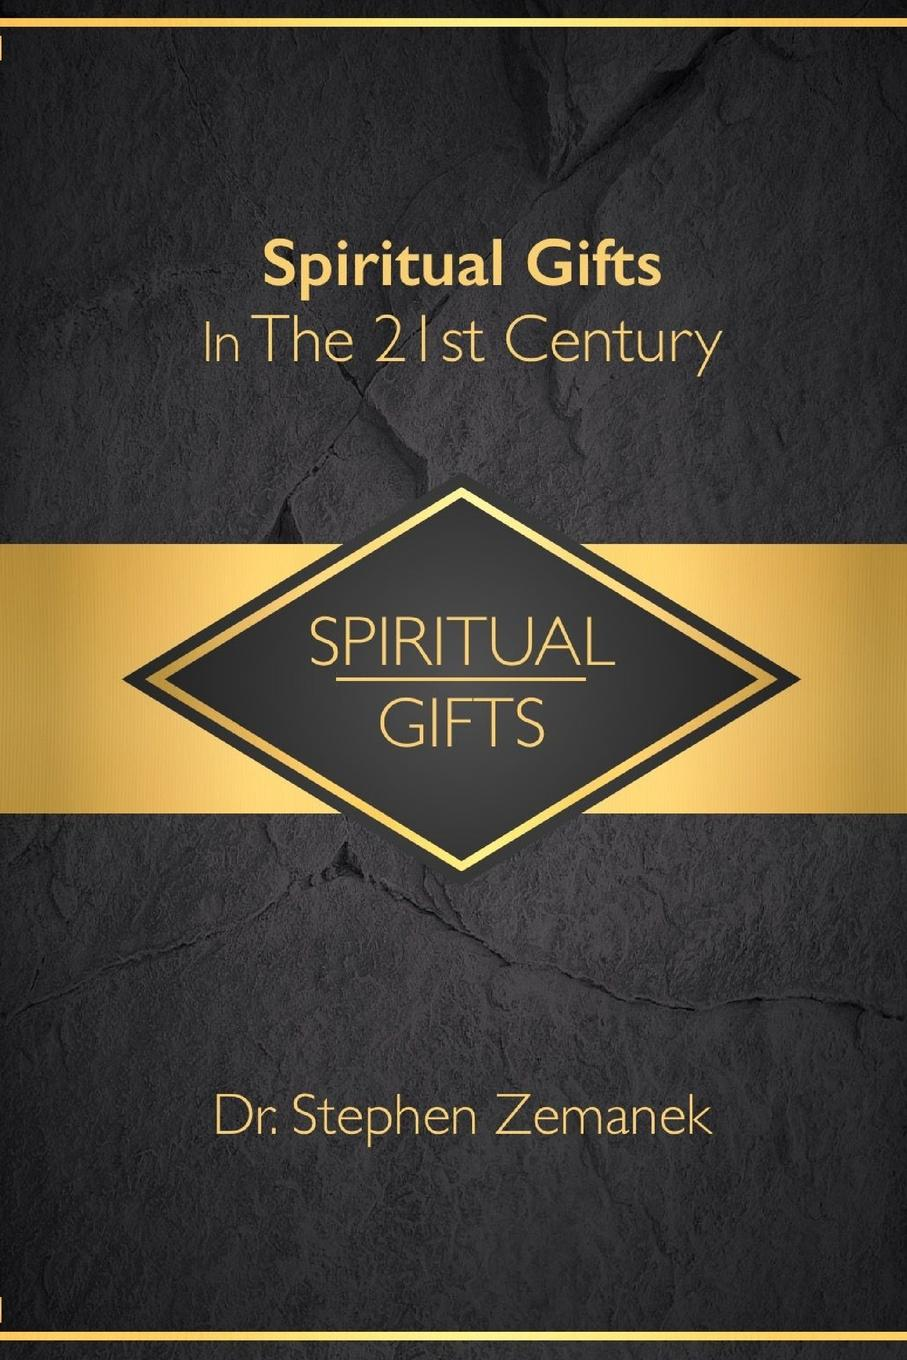 Фото - Dr. Stephen Zemanek Spiritual Gifts For The 21st Century harald welzer climate wars what people will be killed for in the 21st century